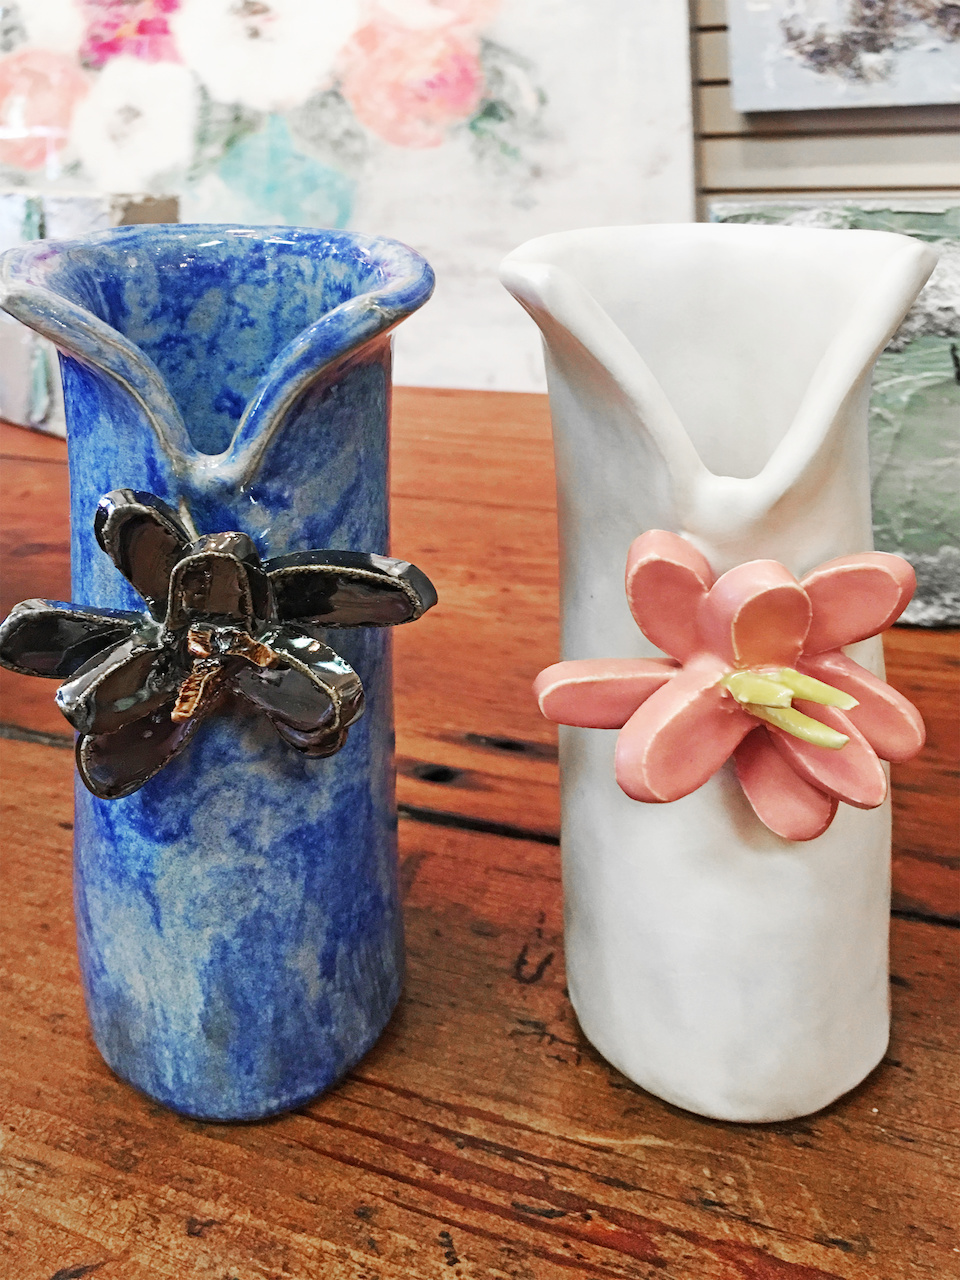 Alton Sharick flower vase, $40 each, at Mulberry Heights Antiques